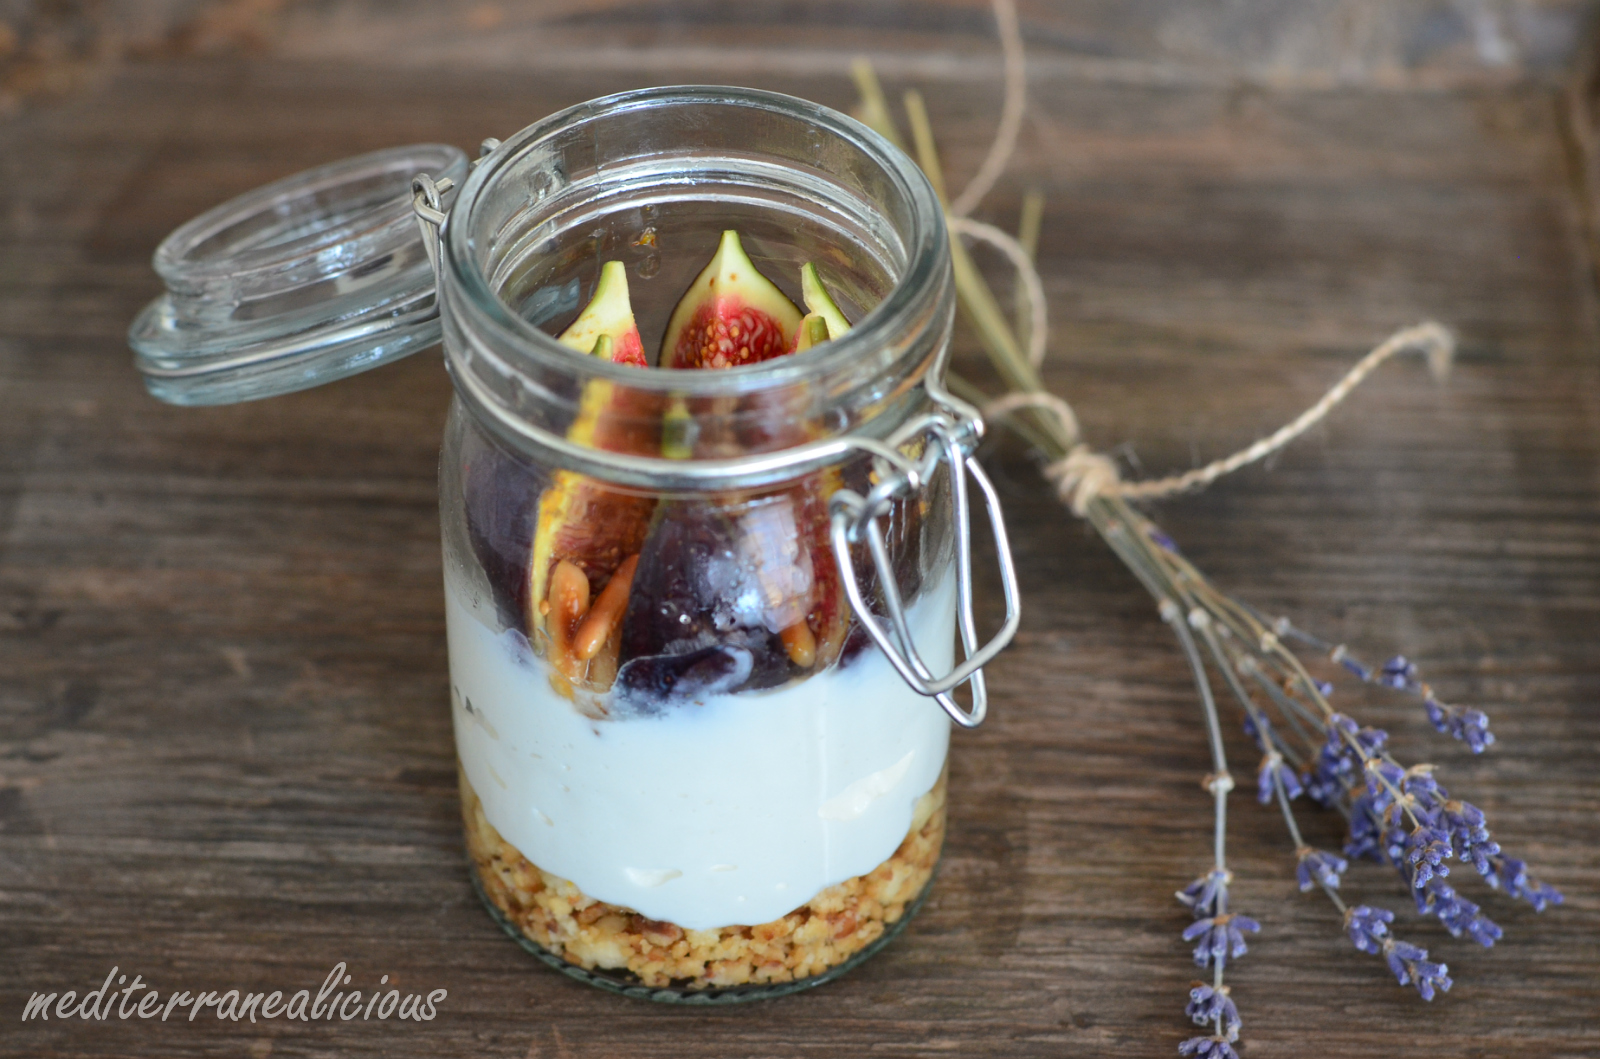 Figs with lavender honey